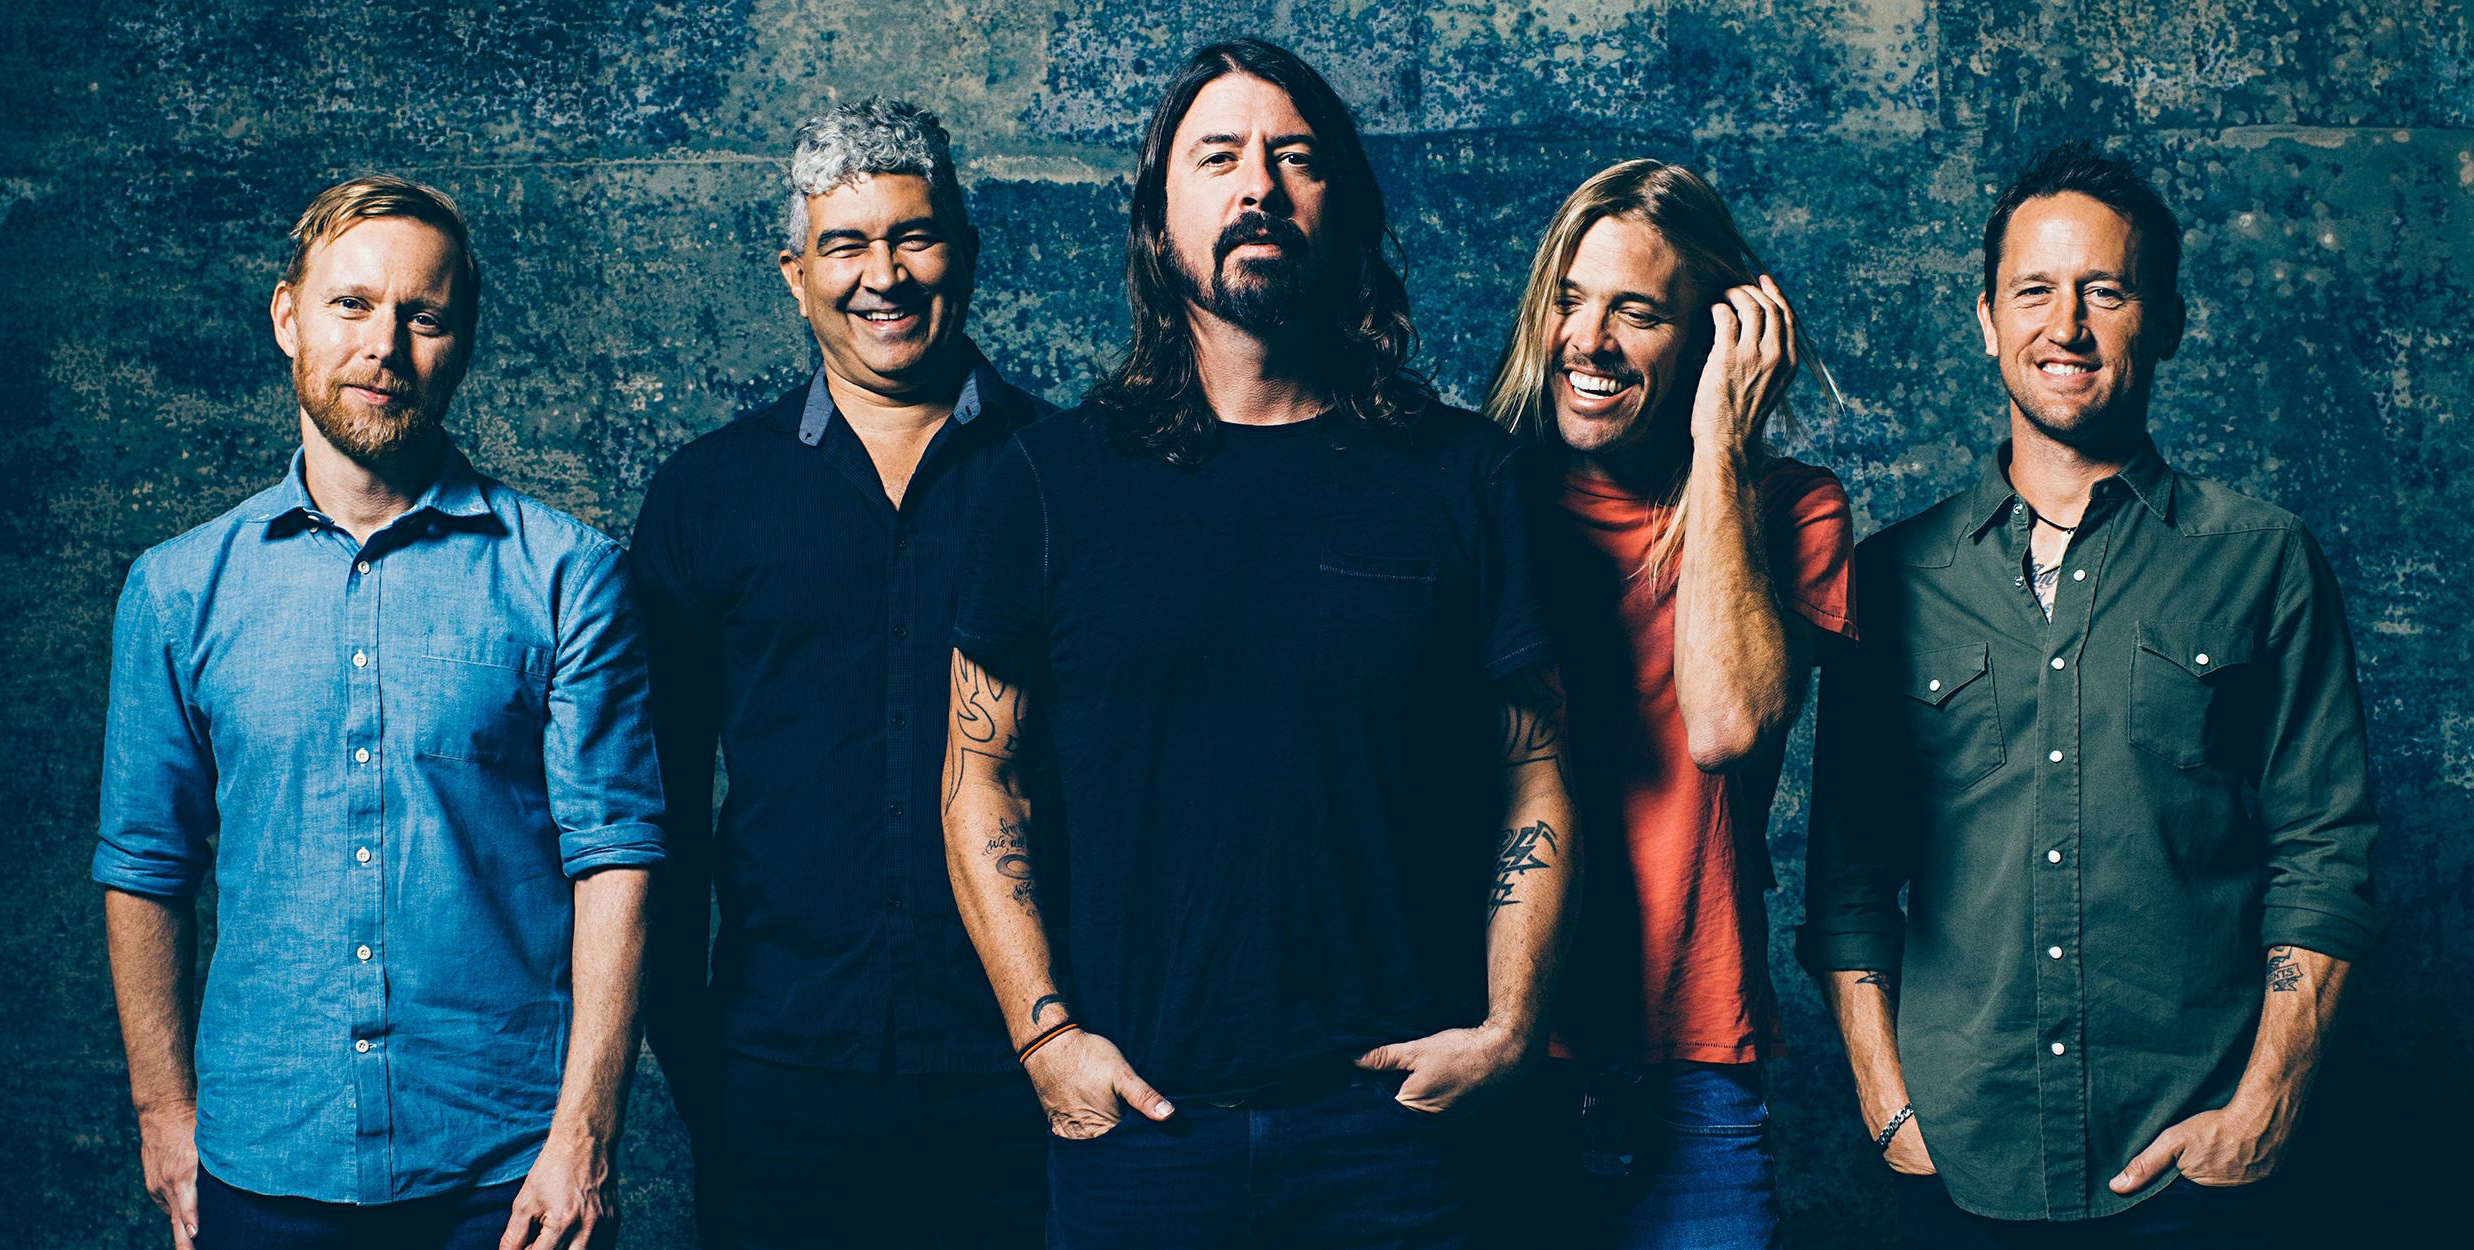 Confirmado: ¡Vuelve Foo Fighters!